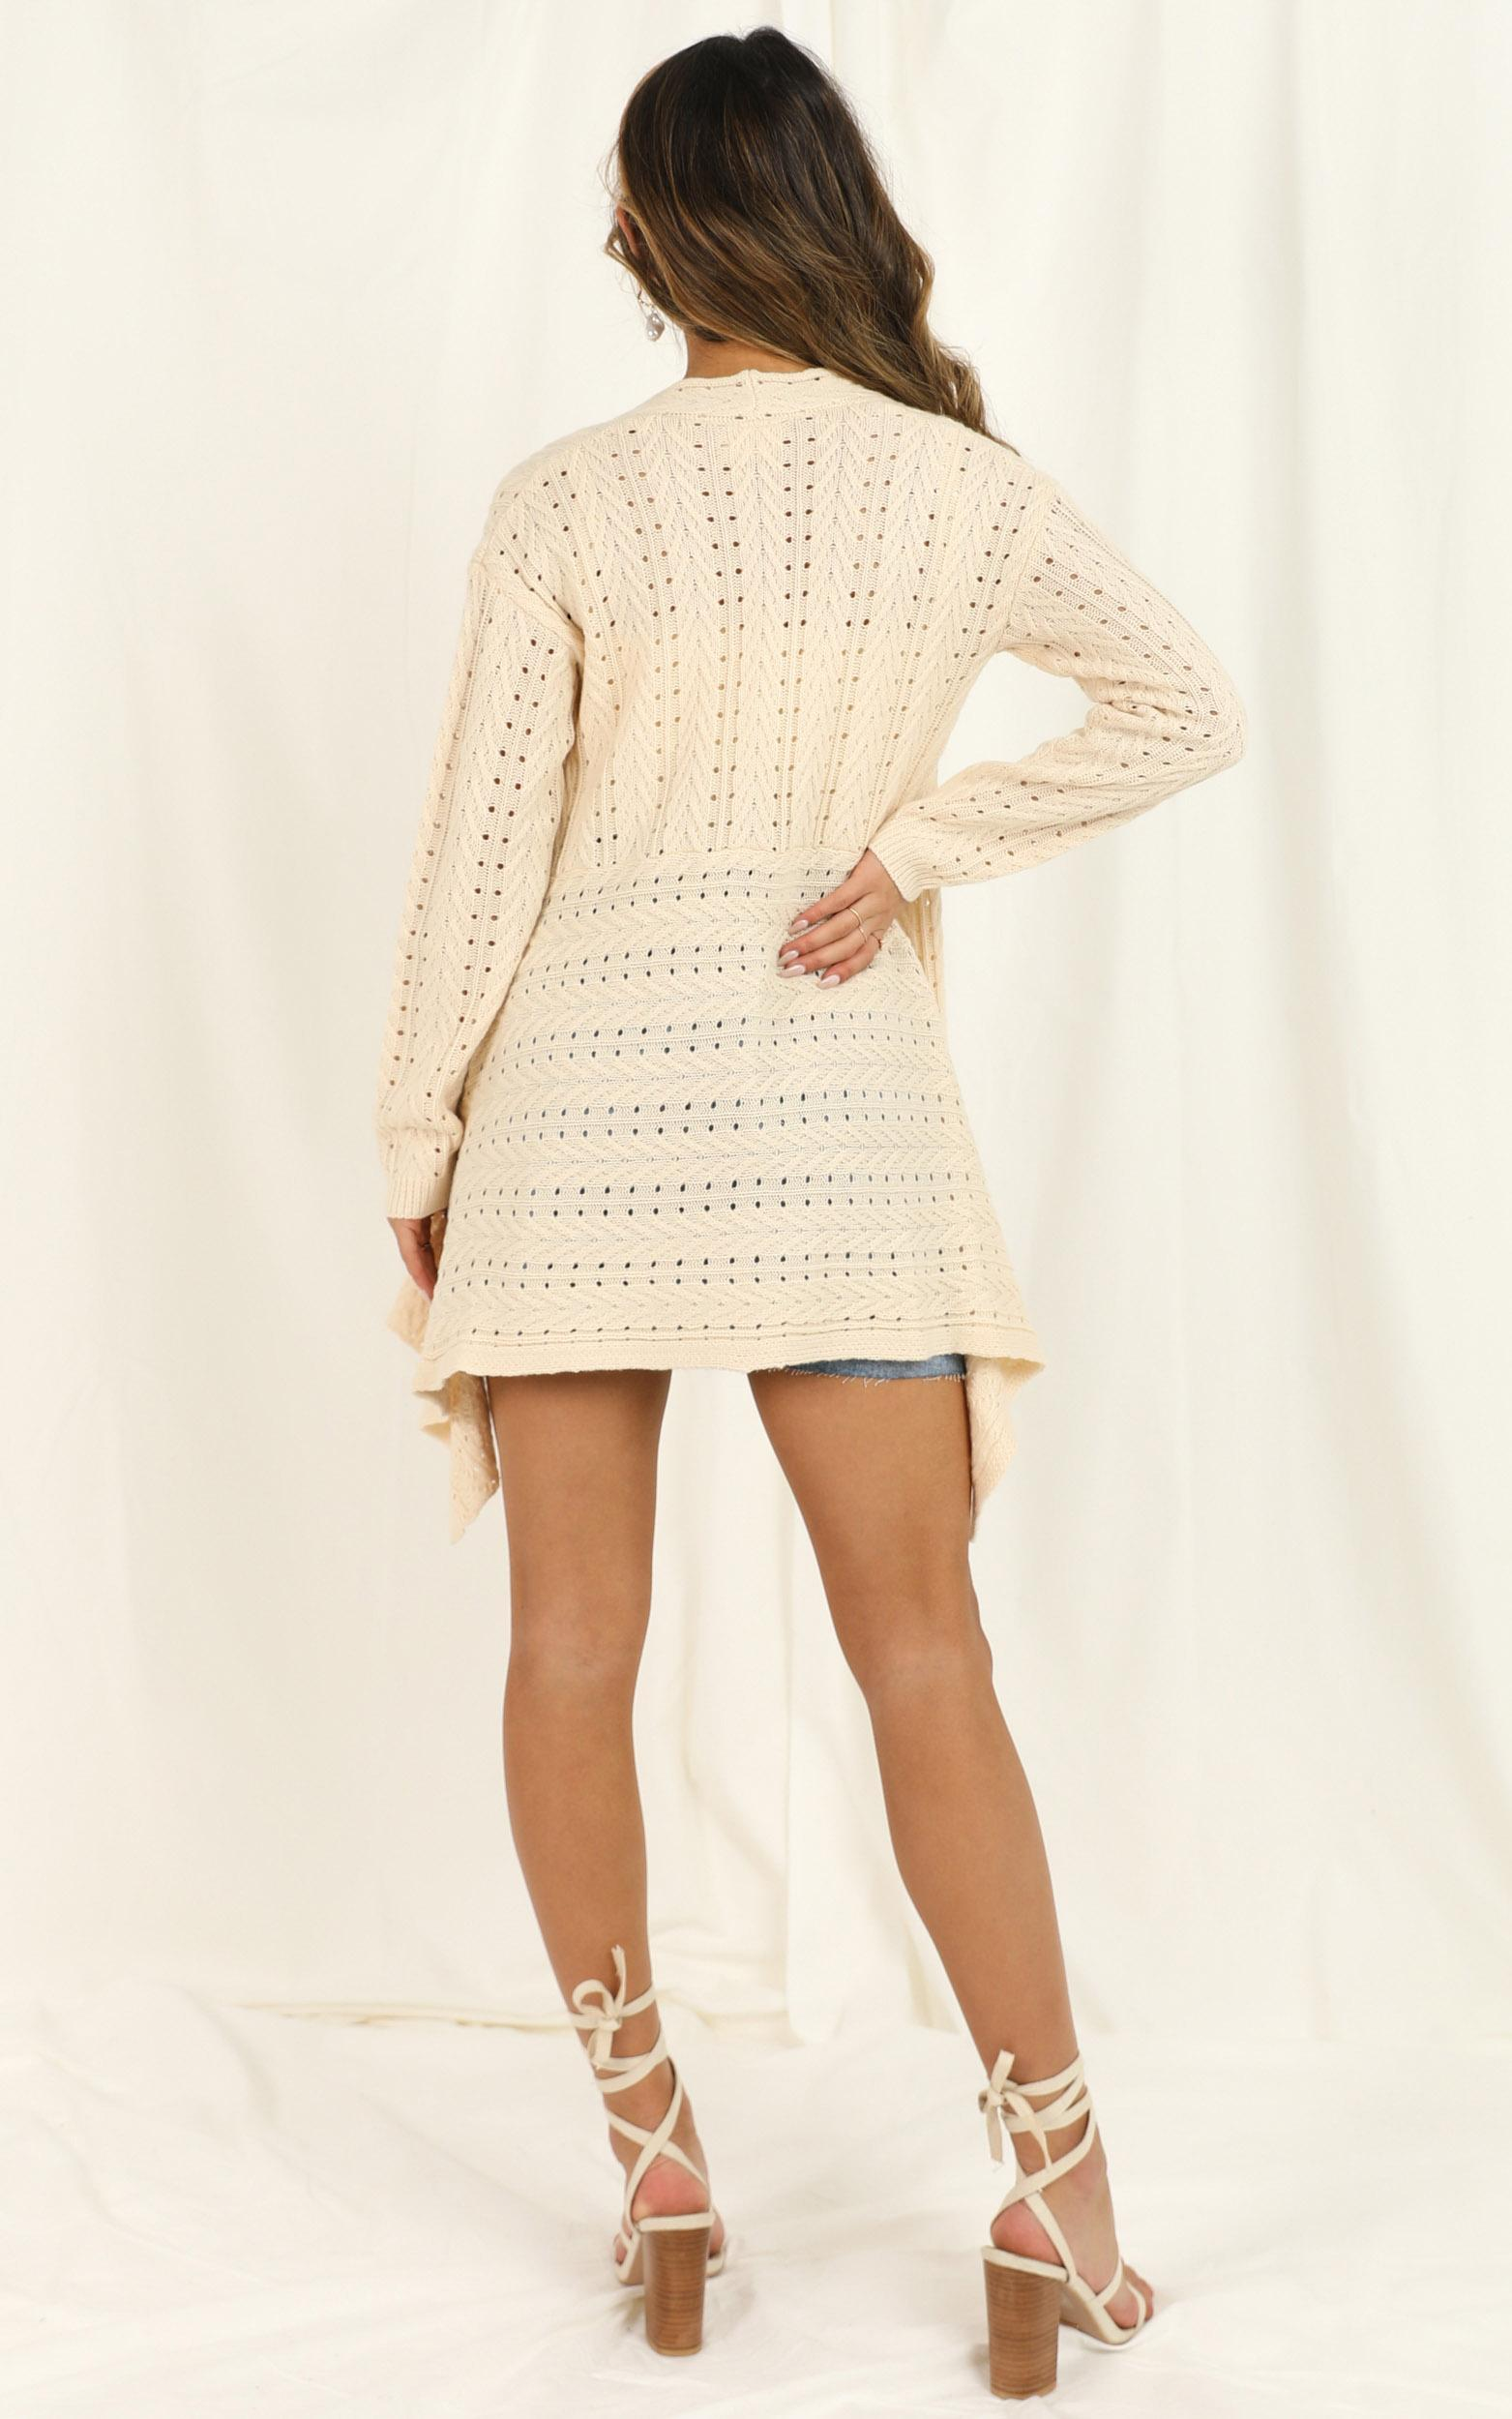 Fake Smiles Cardi in cream - 18 (XXXL), Cream, hi-res image number null